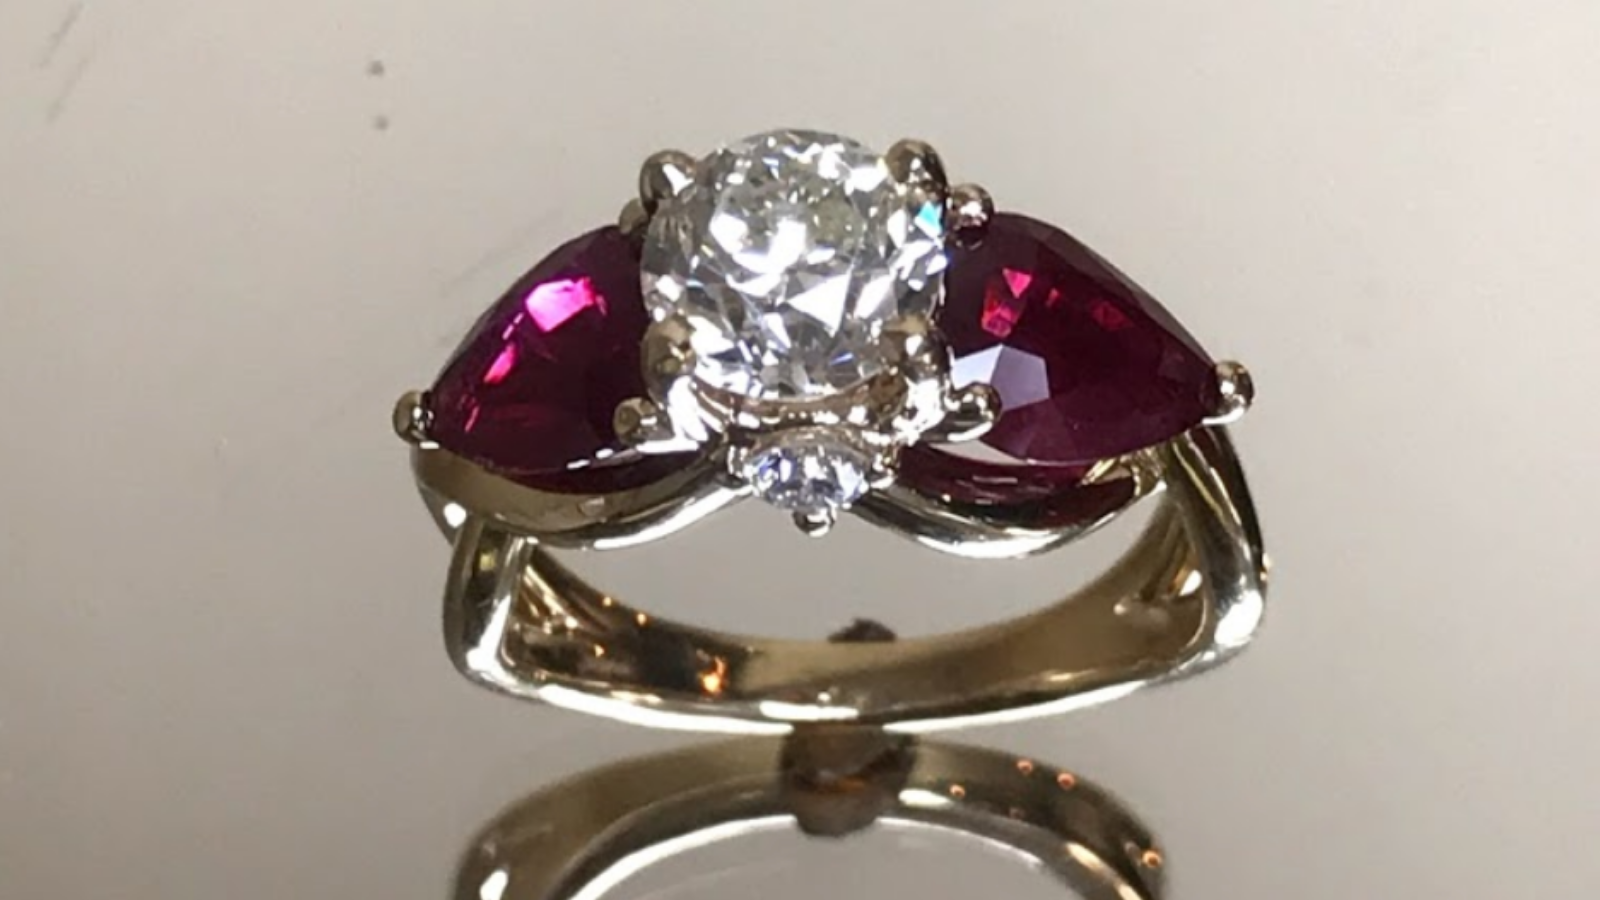 custom ring created by Lisa Marie Kotchey sitting on a reflective surface